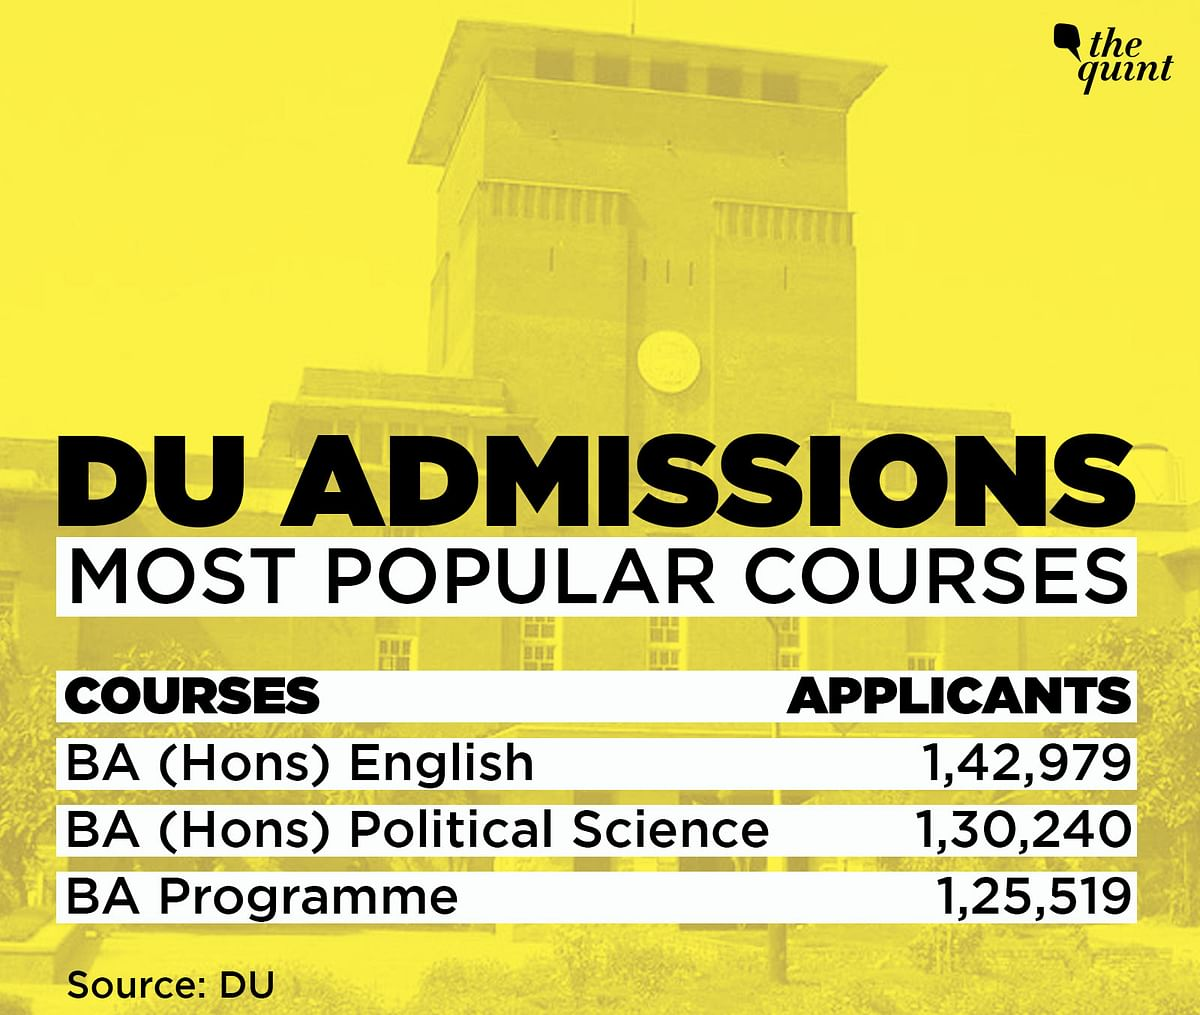 DU Admissions: Humanities Most Opted For, Rise in Women Applicants